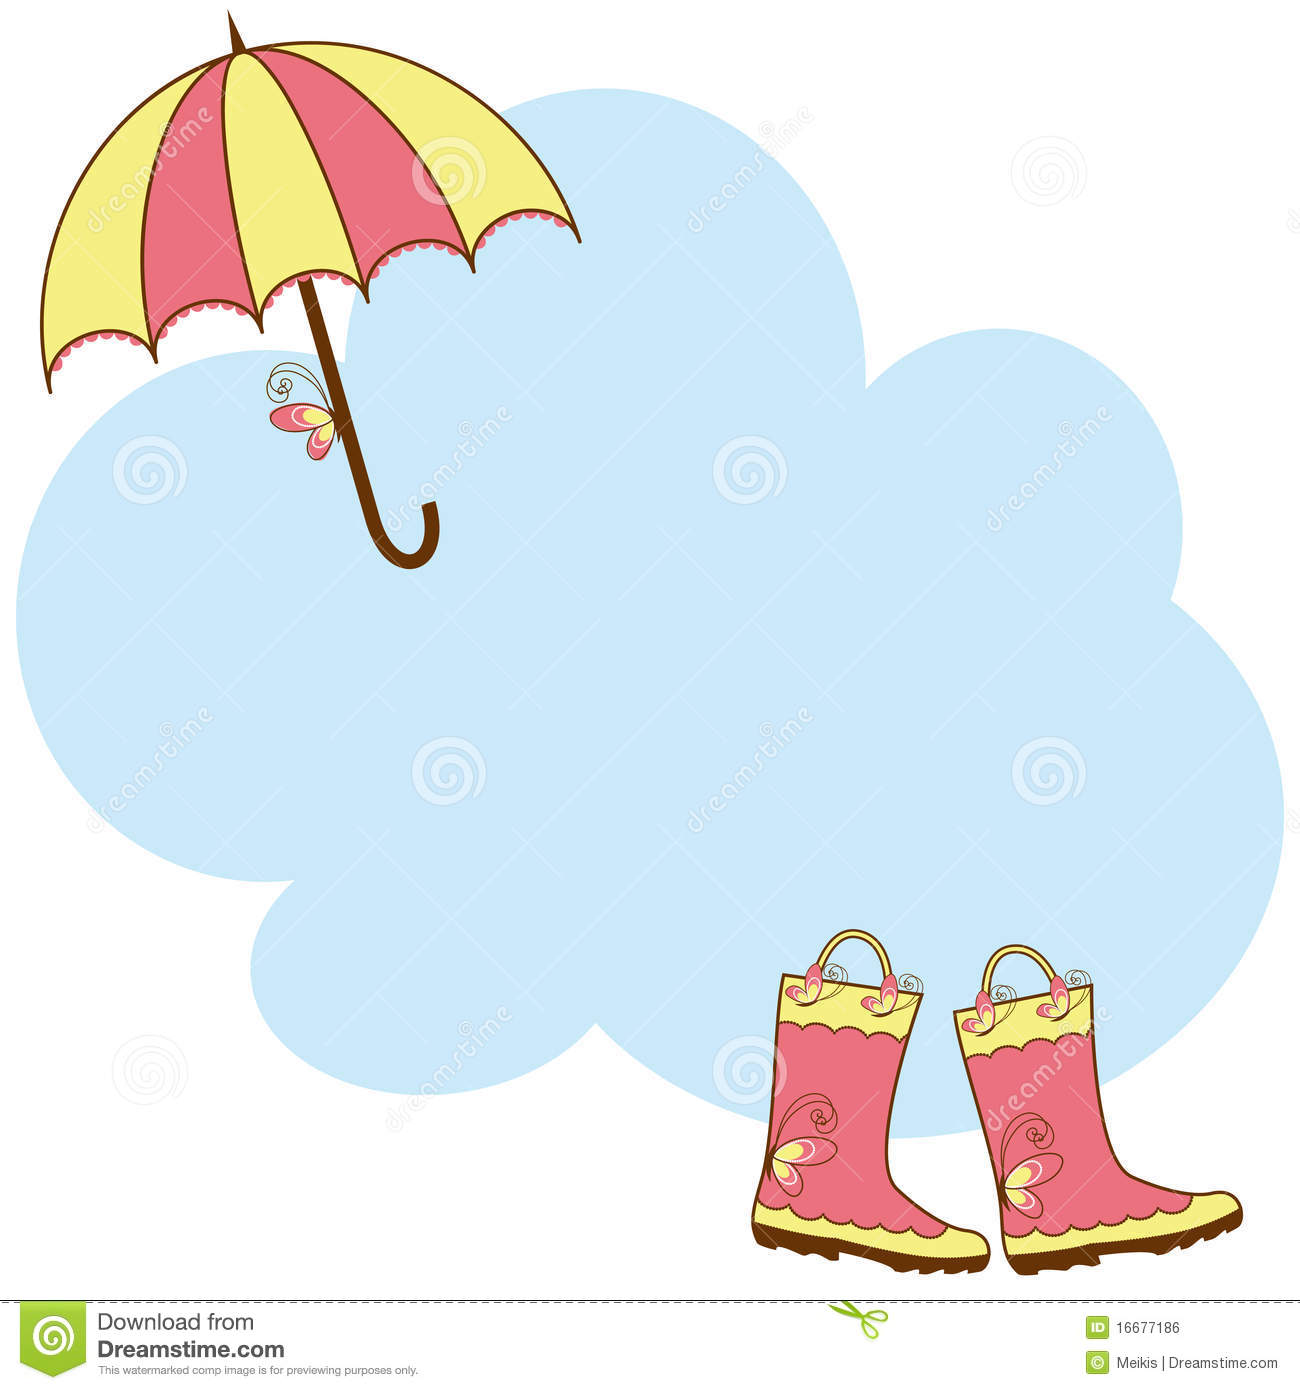 illustration cute rain boots and umbrella royalty free